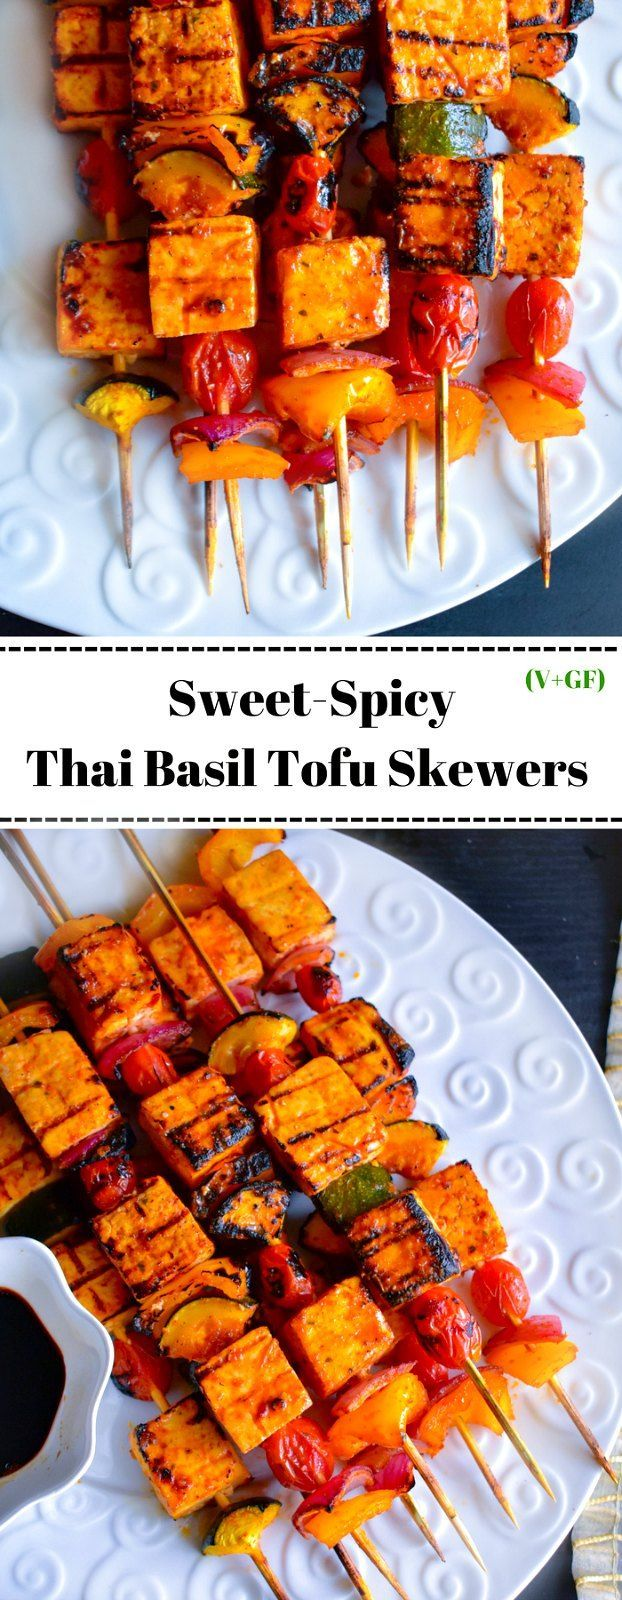 Sweet-Spicy Thai Basil Tofu Skewers: delicious and juicy skewers are vegan, glutenfree and made using a fingerlicking sweet-spicy Thai-basil homemade sauce.